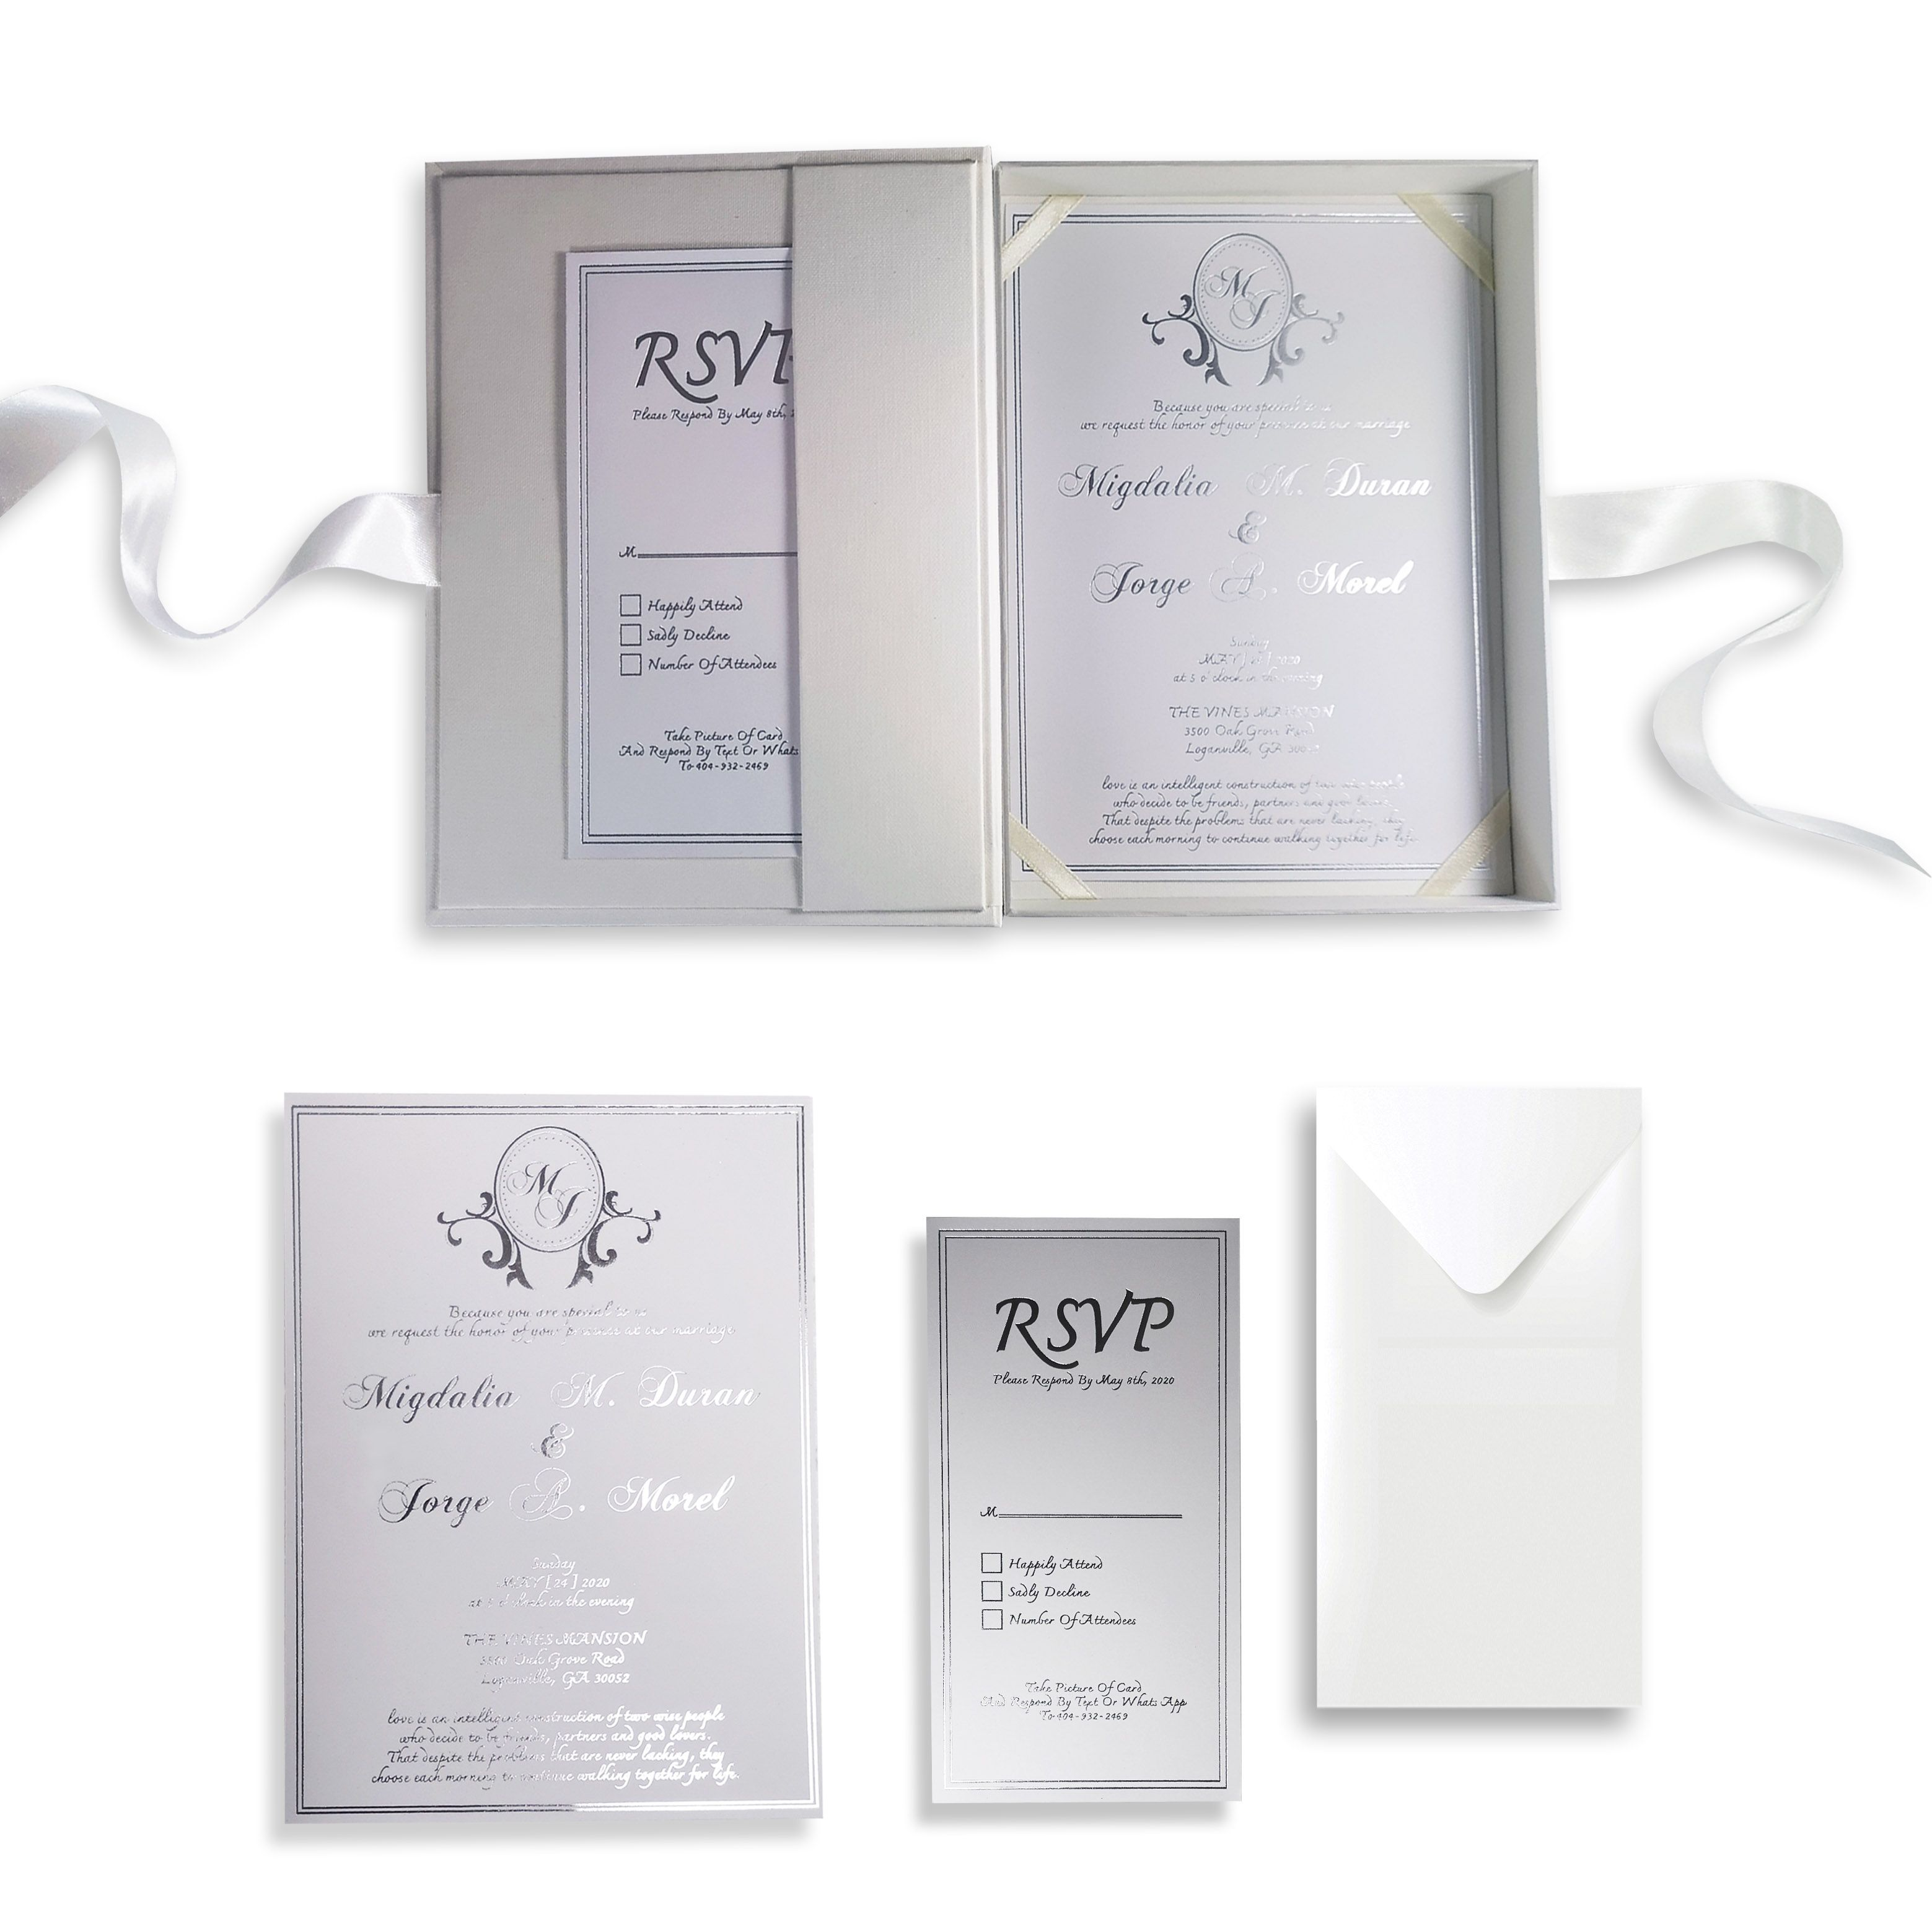 100+ Best Embellished Boxed Wedding Invitations images in 2020 | wedding  invitations, box wedding invitations, crystal brooch